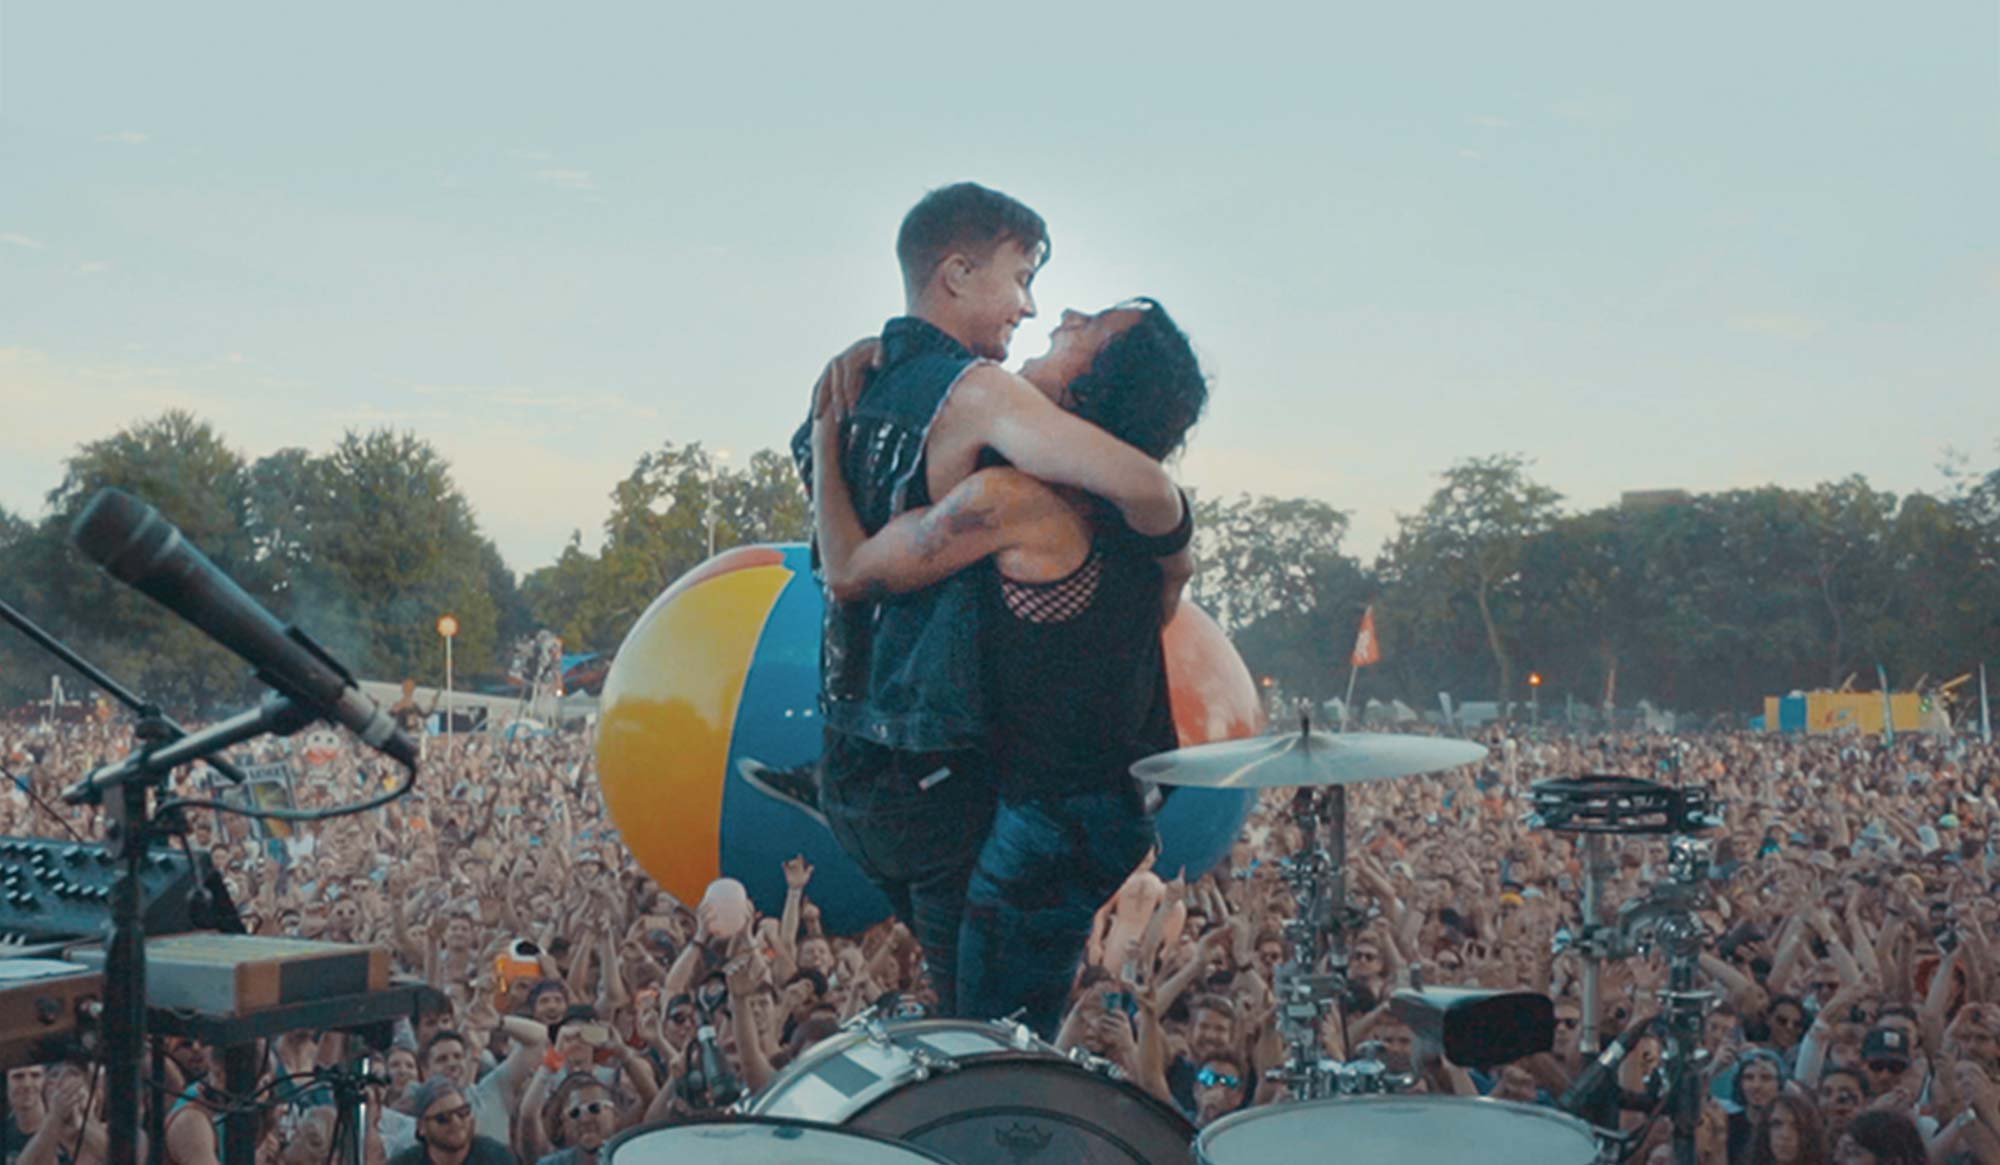 Matt and Kim Engage With Energy and Enthusiasm